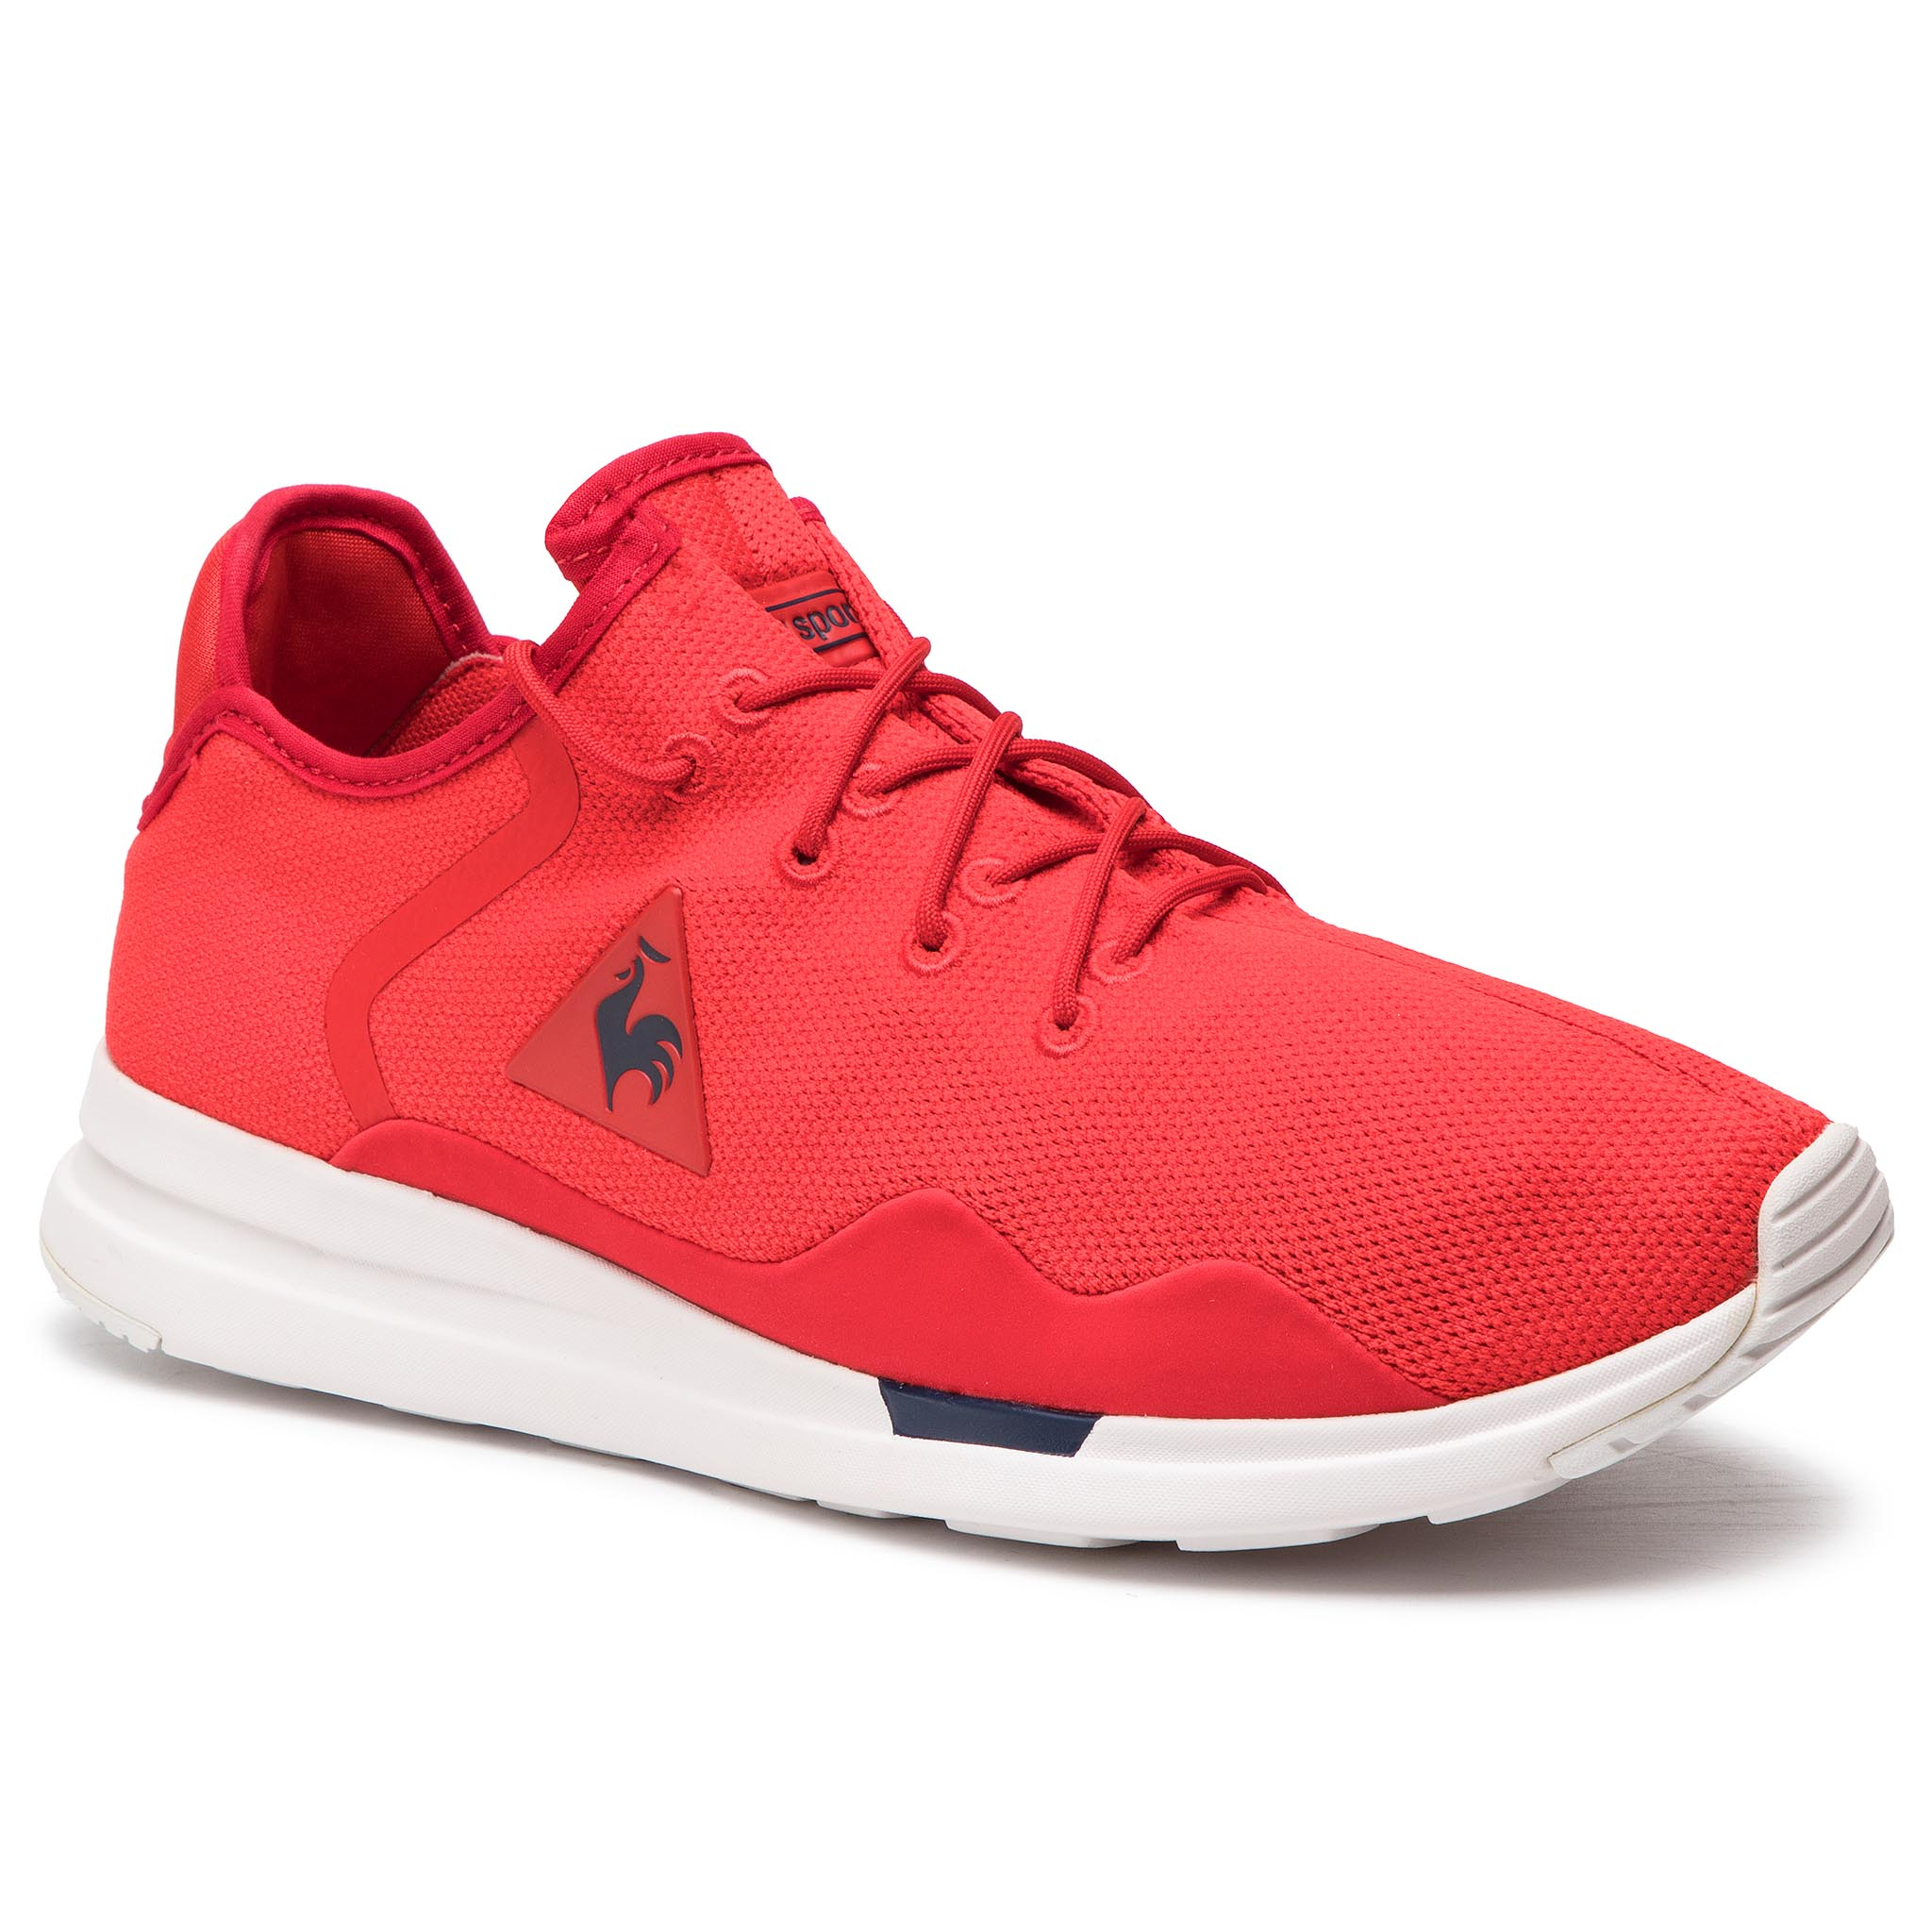 Sneakers LE COQ SPORTIF - Solas 1910479 Pure Red/Dress Blue